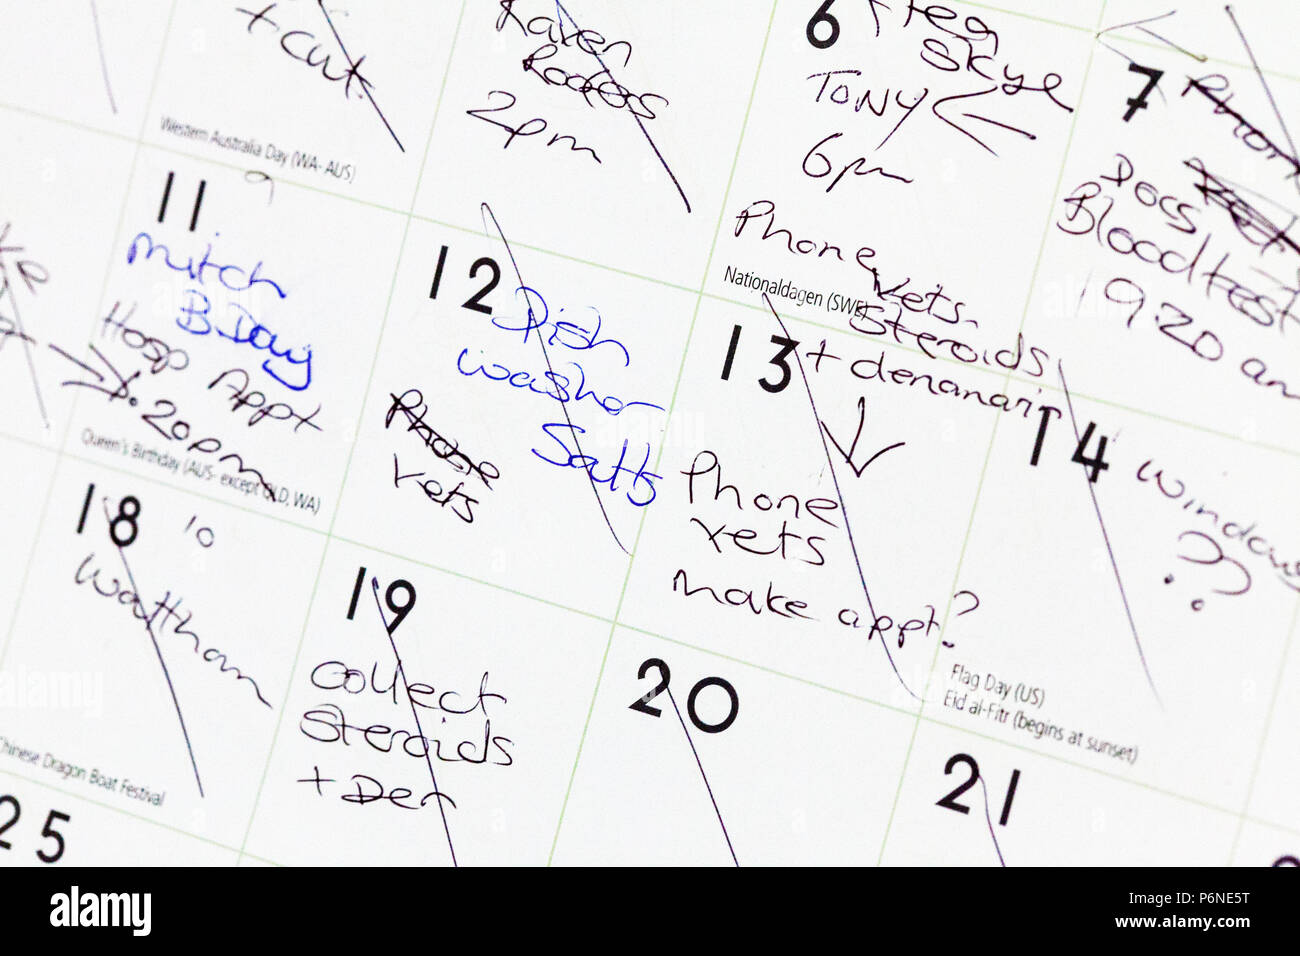 Busy schedule, busy calendar, appointments, things to do, to do list, full calendar, calendar, overworked, schedule, reminder, reminders, appointments Stock Photo